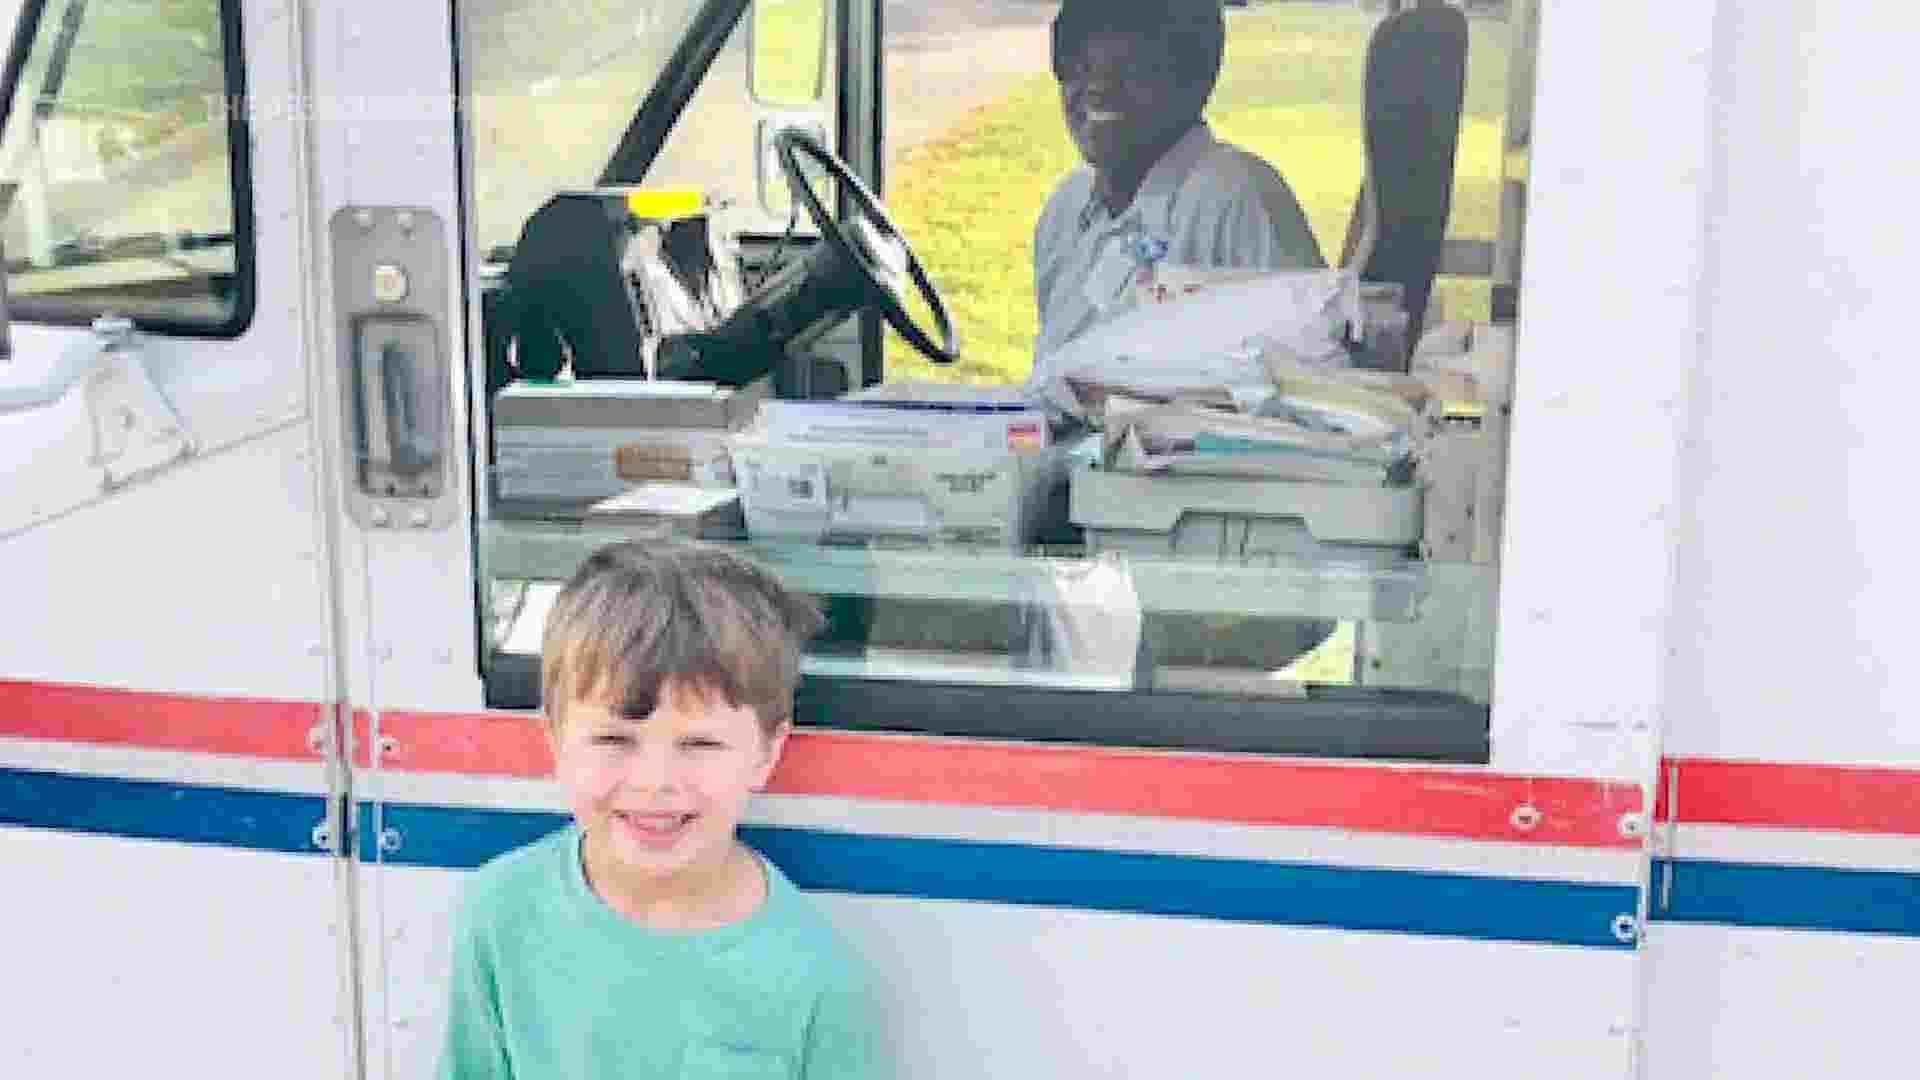 Mail carrier surprises boy with birthday gift